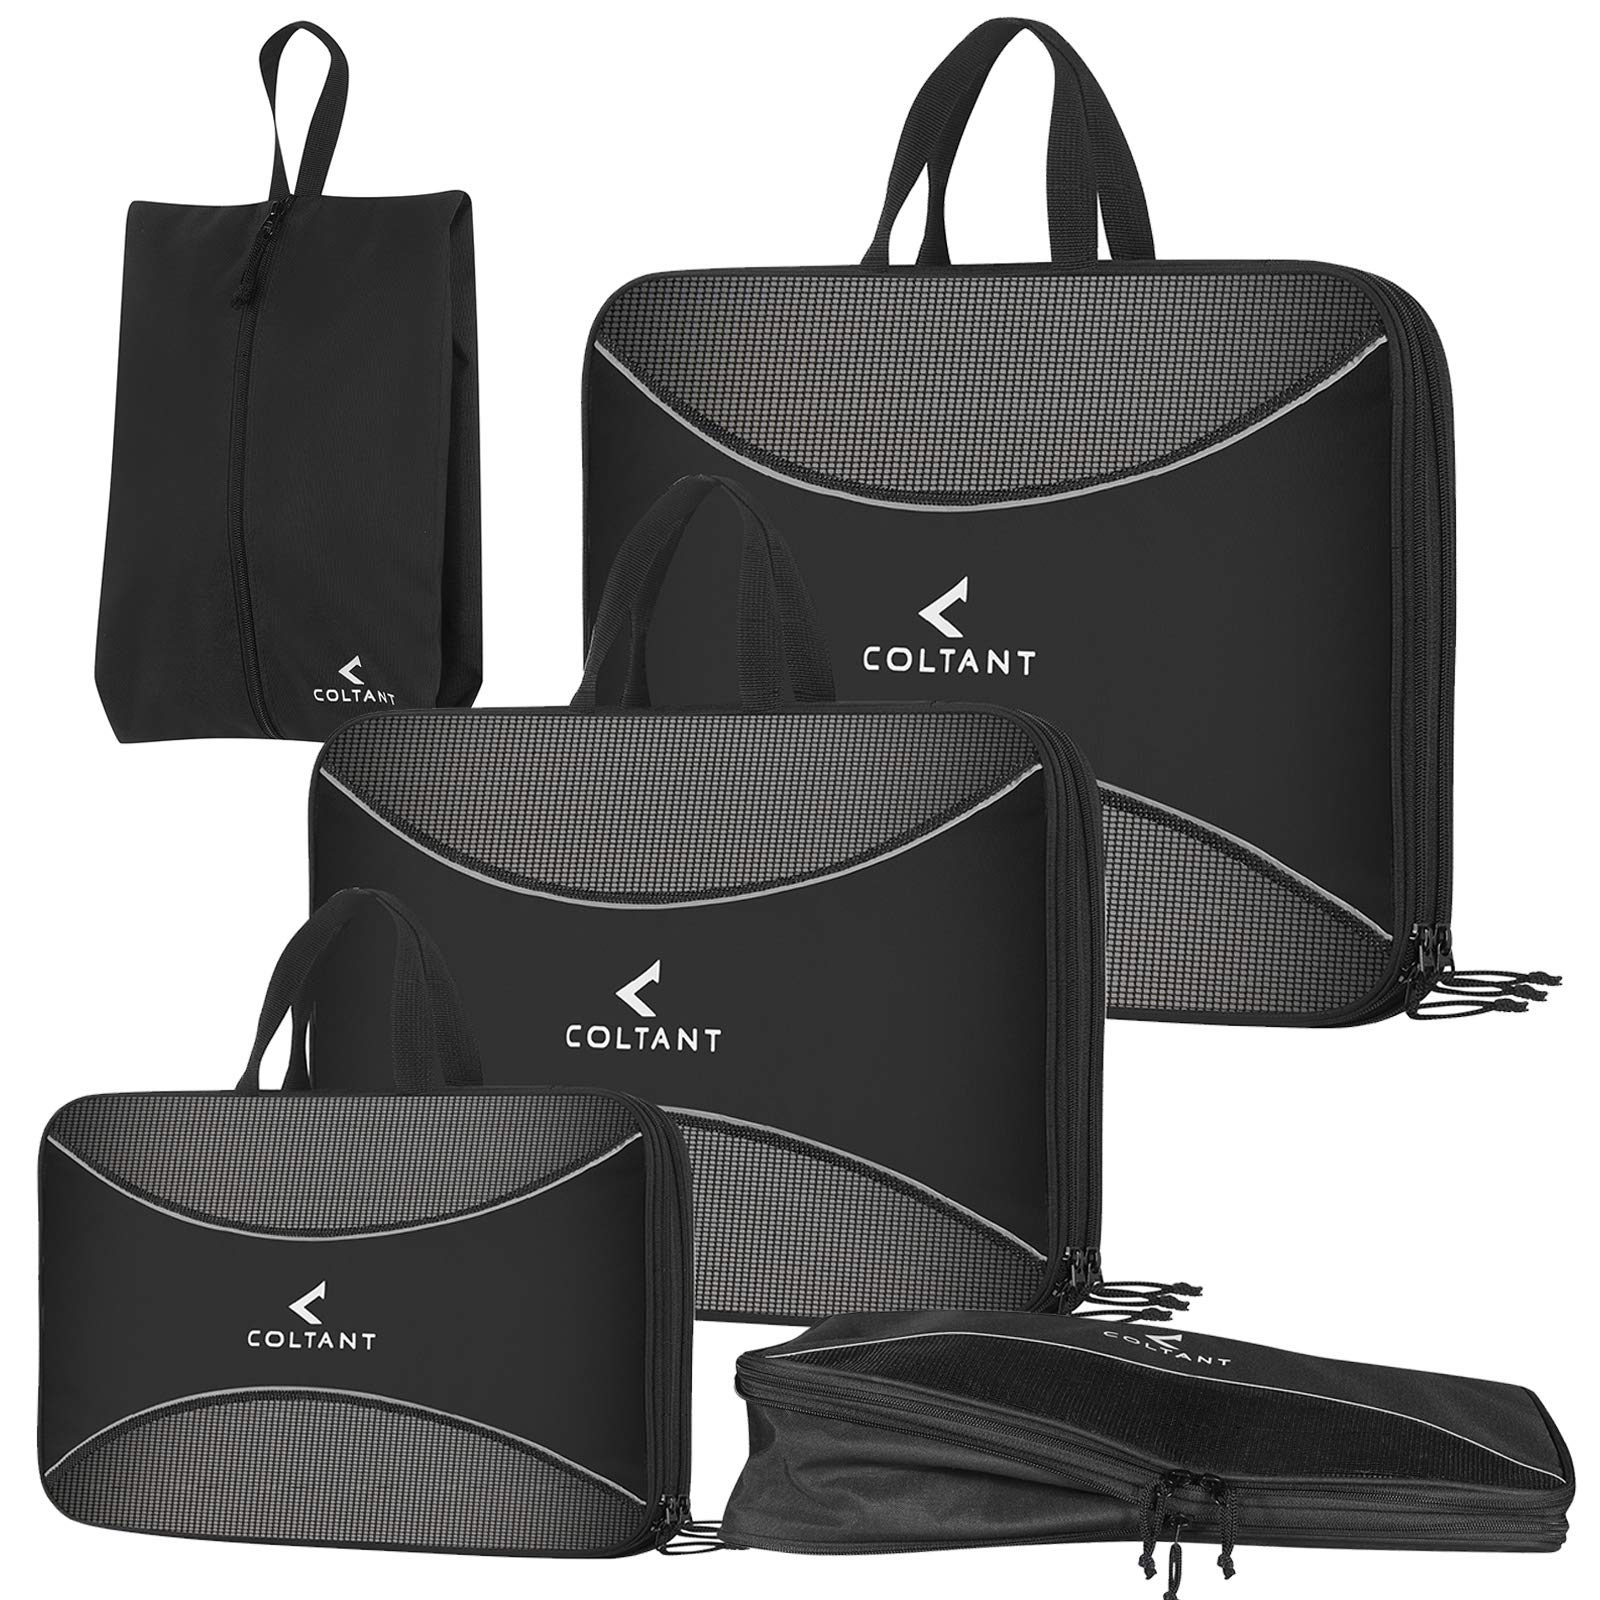 4 Set Compression Packing Cubes + Free Shoe Bag for Travel and luggage organizer by Coltant (Image #1)